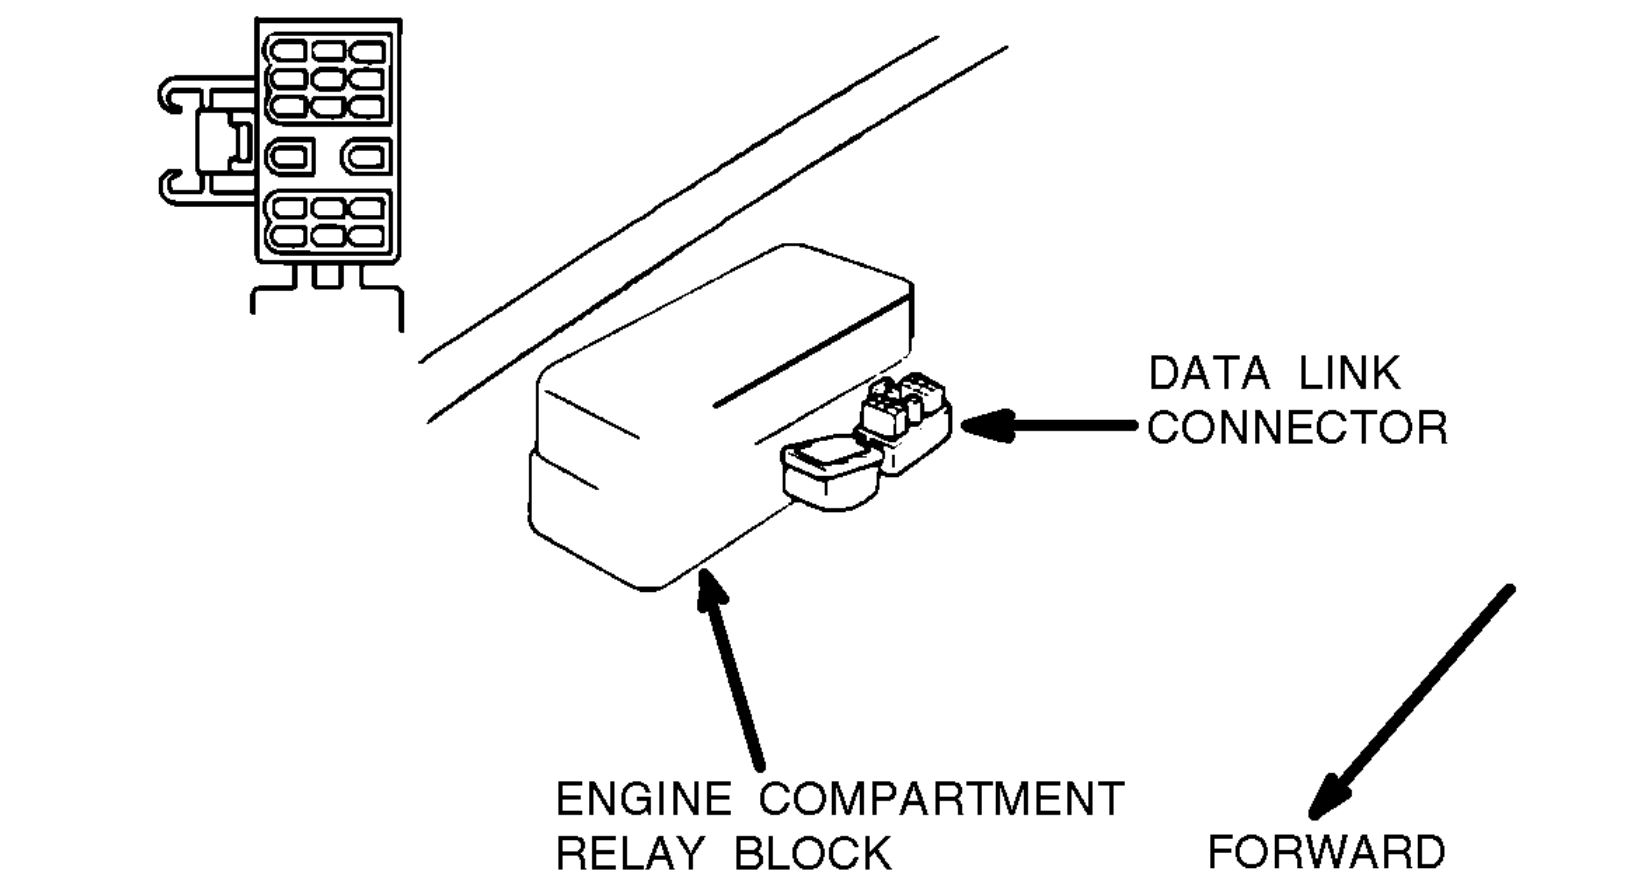 Where Is The Diagnostic Connector On My Truck